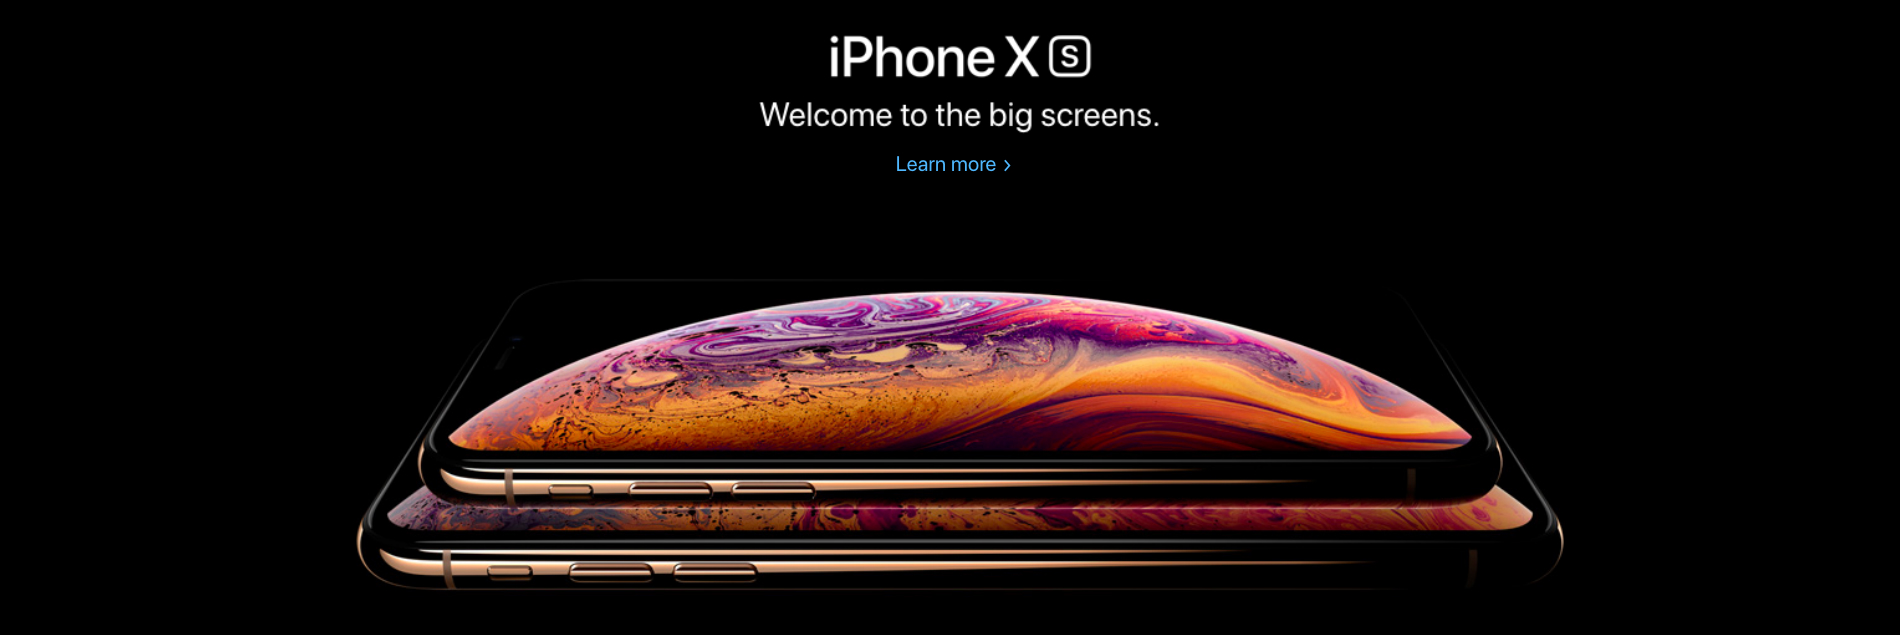 iphone xs series